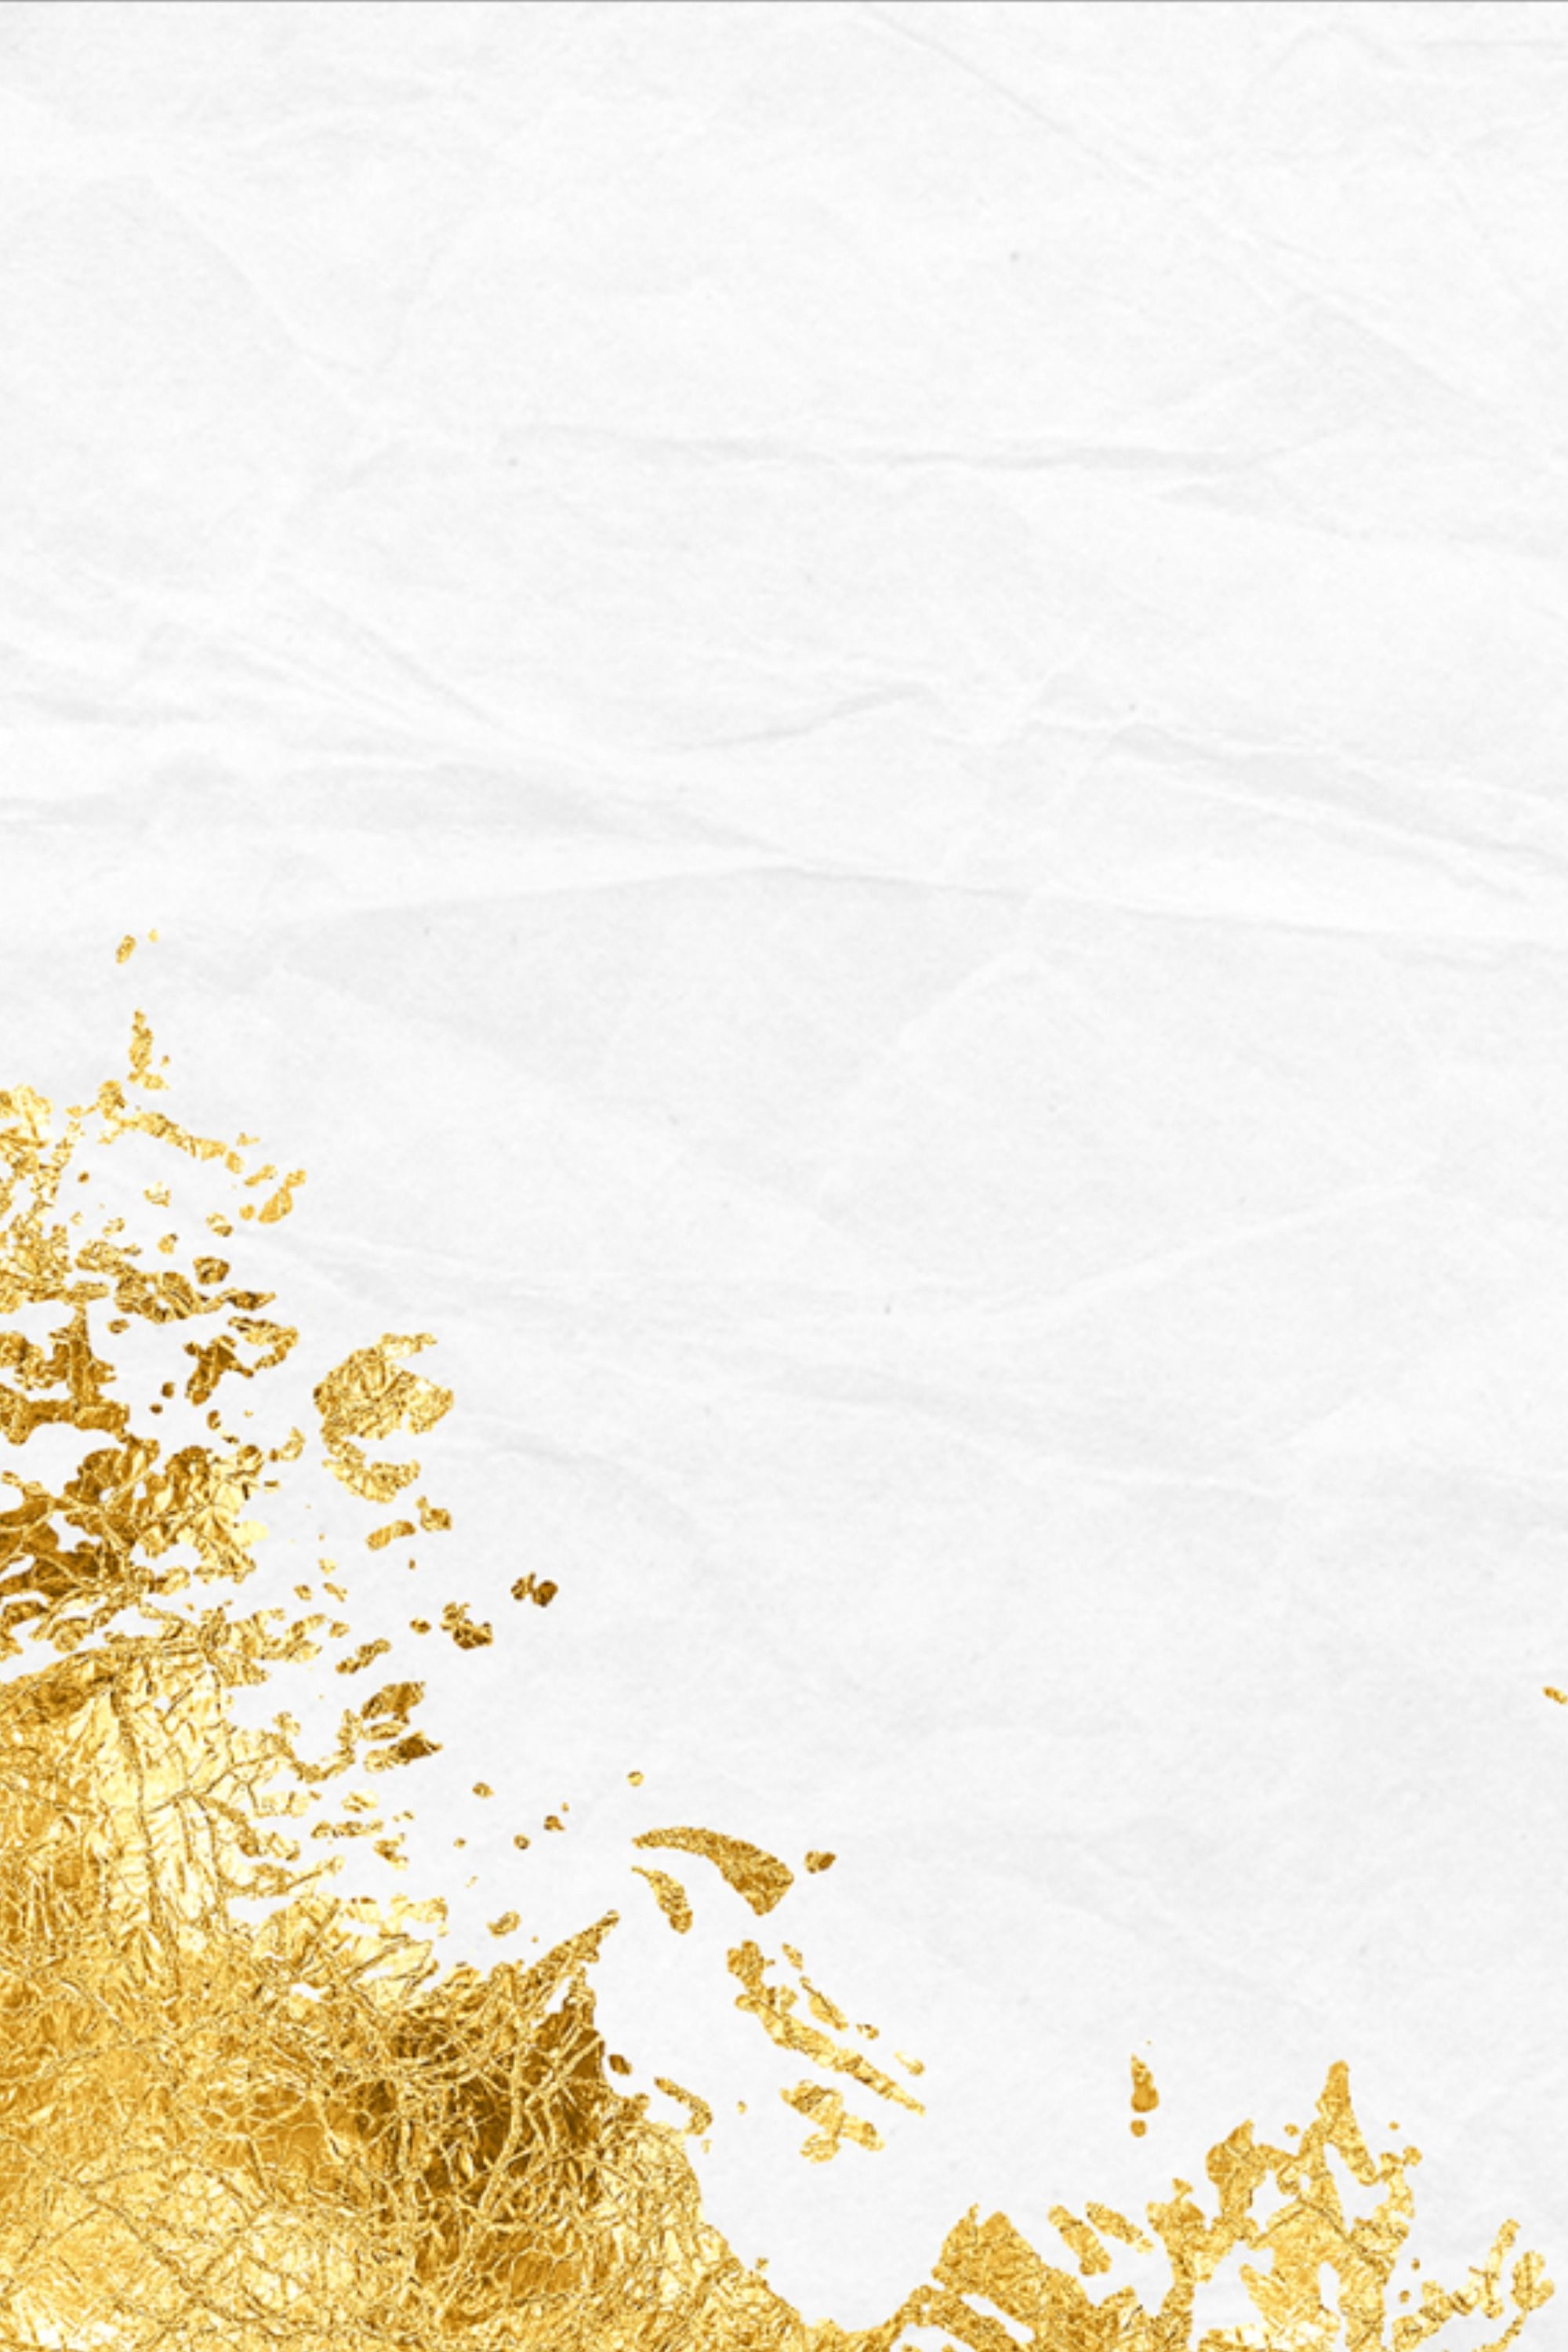 Gold Foil Flake Clipart Gold Borders Overlays Gold Foil Frames Gold Grunge Png Clipart Gold Leaf Art Gold Design Elemets Gold Clipart Gold Clipart Gold Leaf Art Evil Eye Art